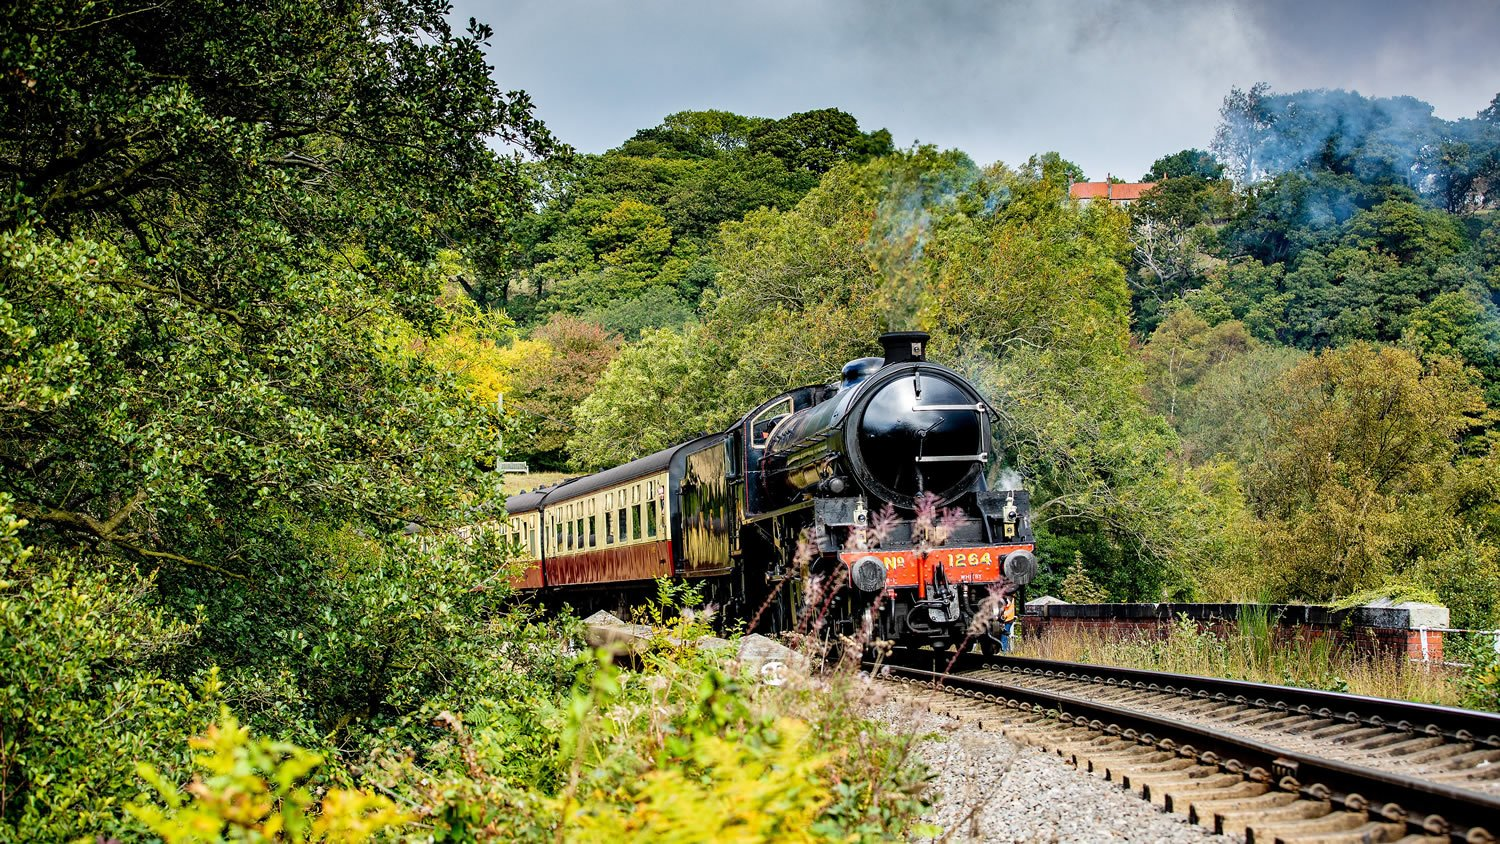 North Yorkshire Moors Railway - Attraction - Pickering